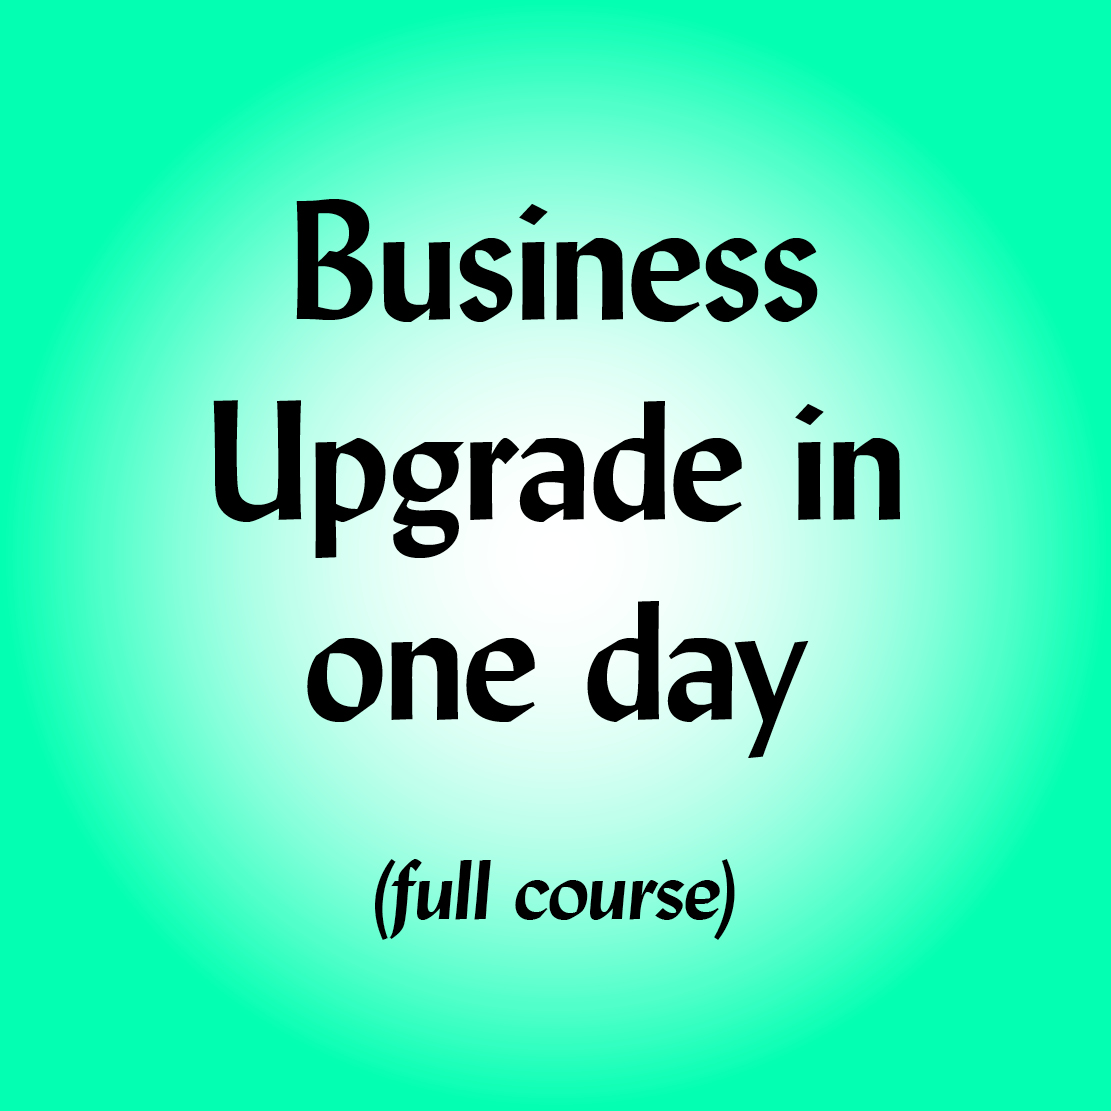 Business Uprade in 1 day